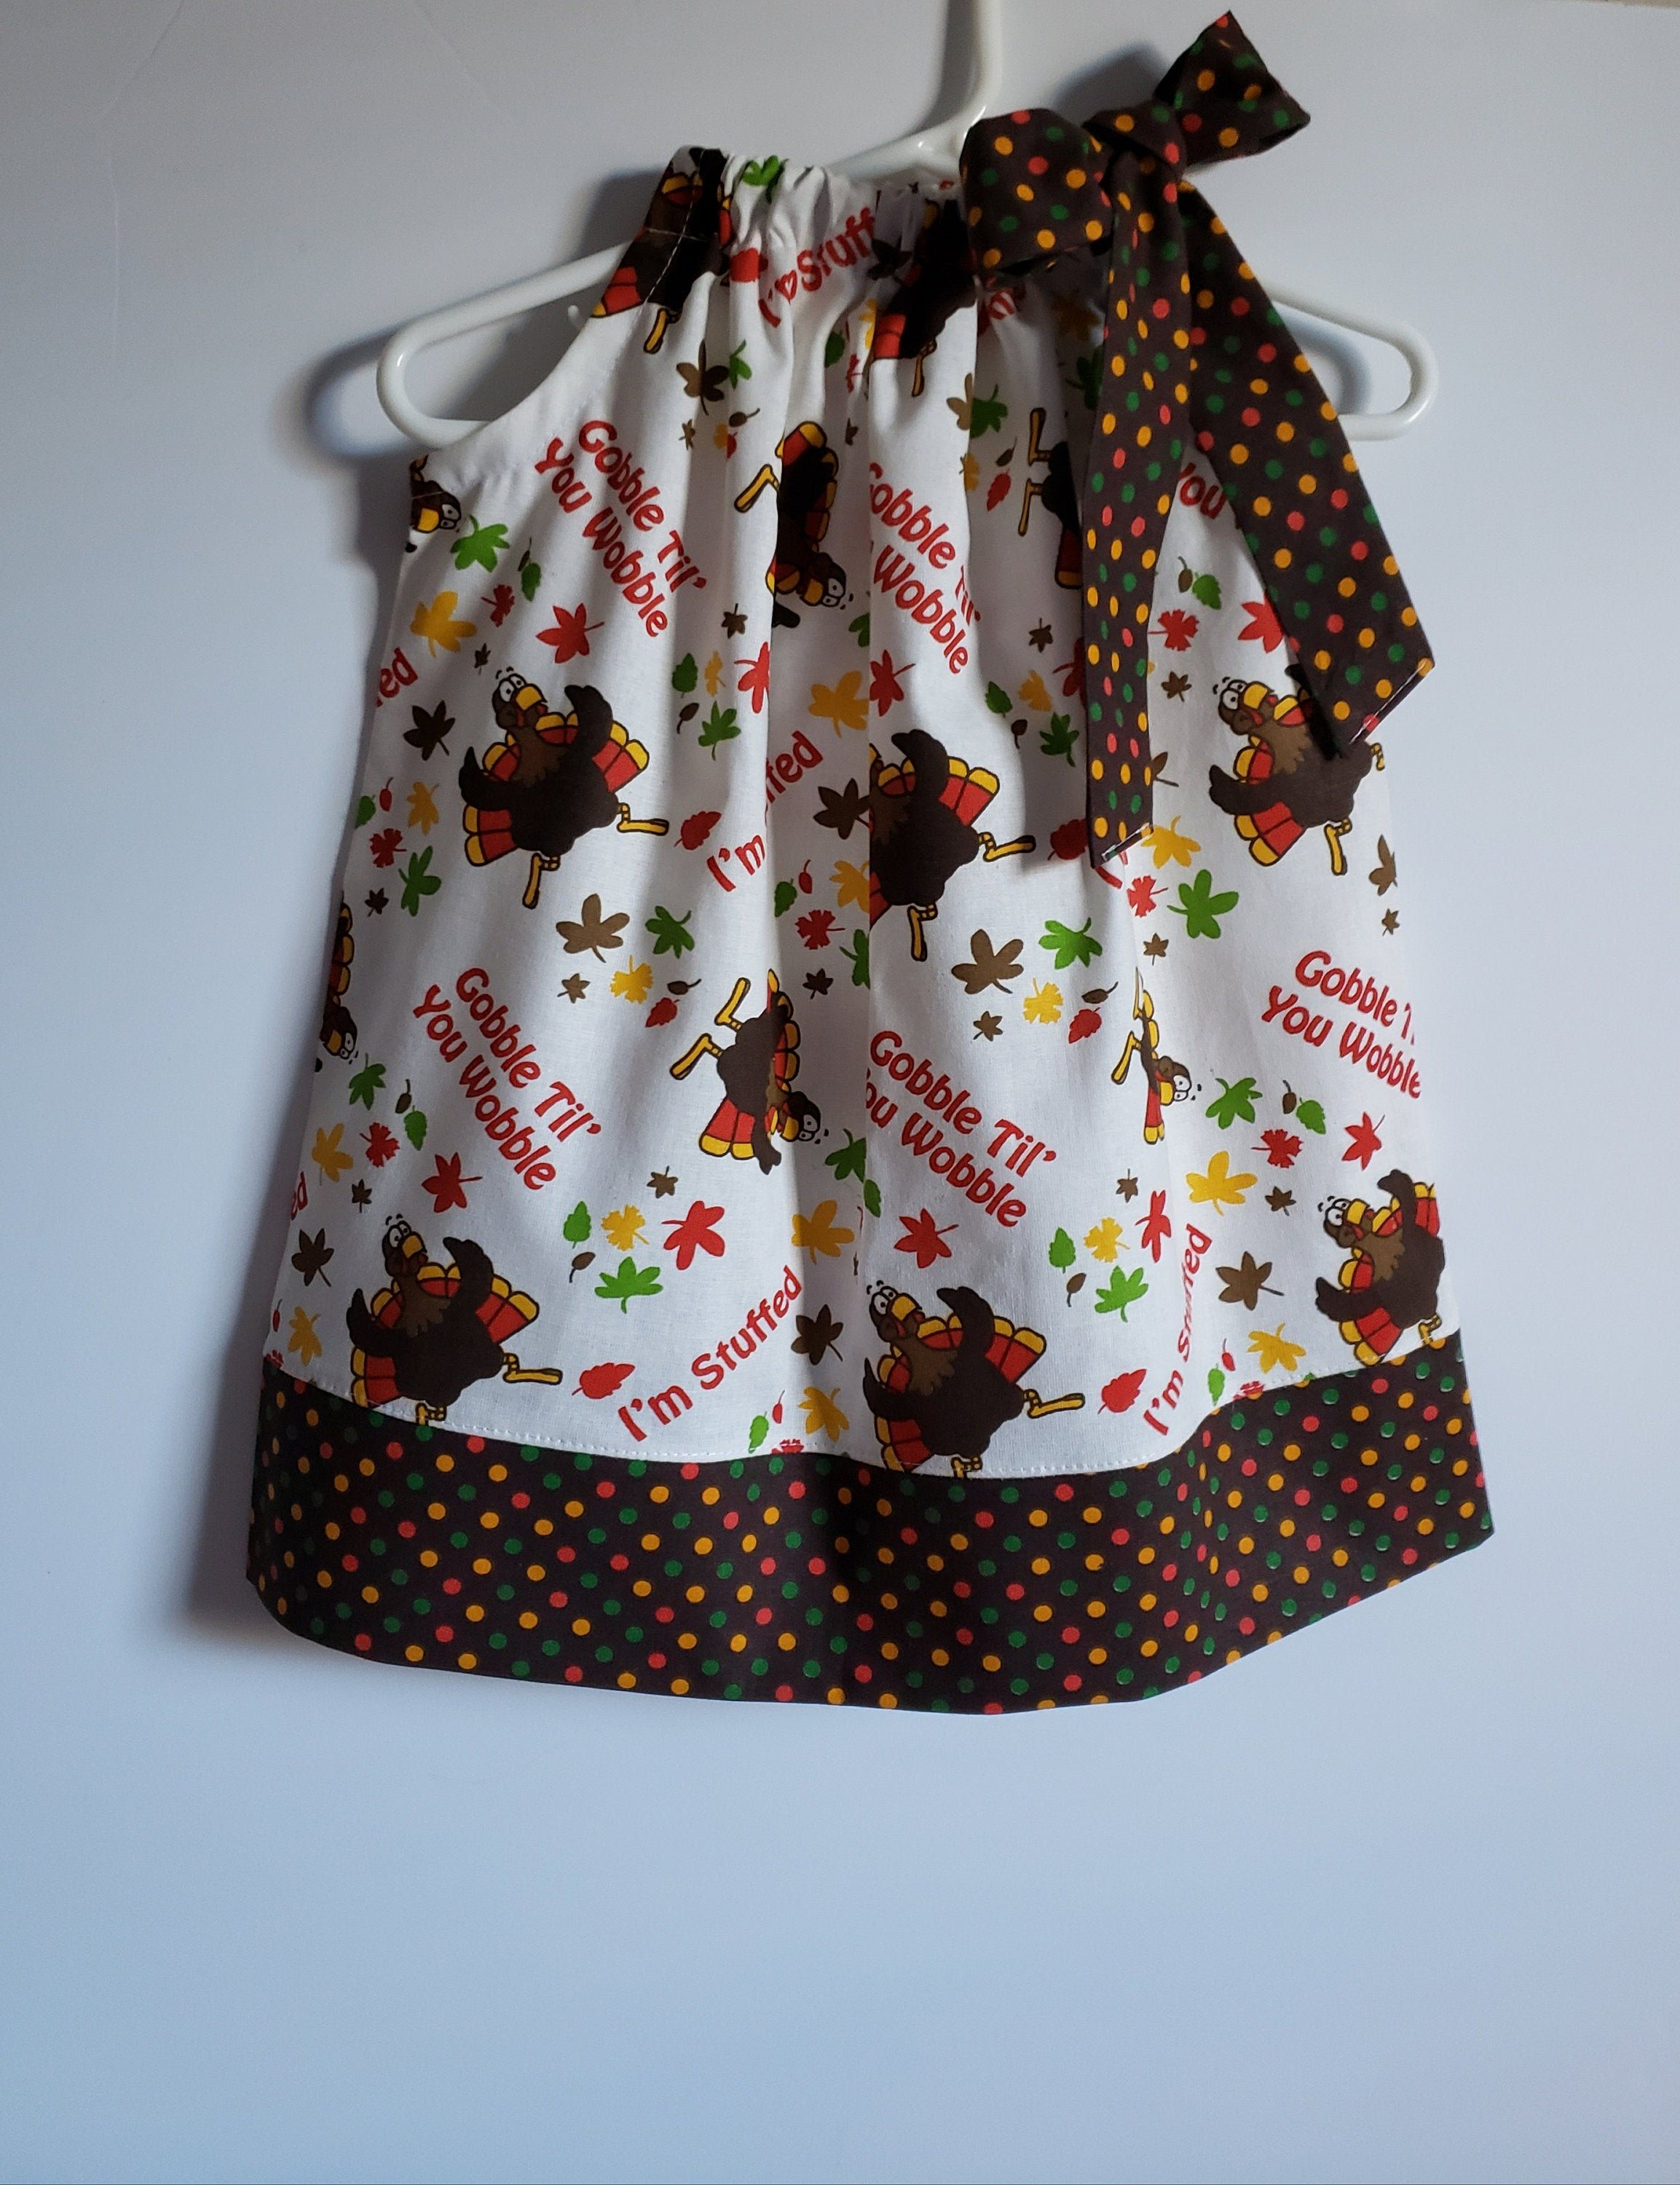 18m Thanksgiving Dress | Pillowcase Dress with Turkeys | size 18 months | Turkey Dress | Thanksgiving Outfit | Ready to ship